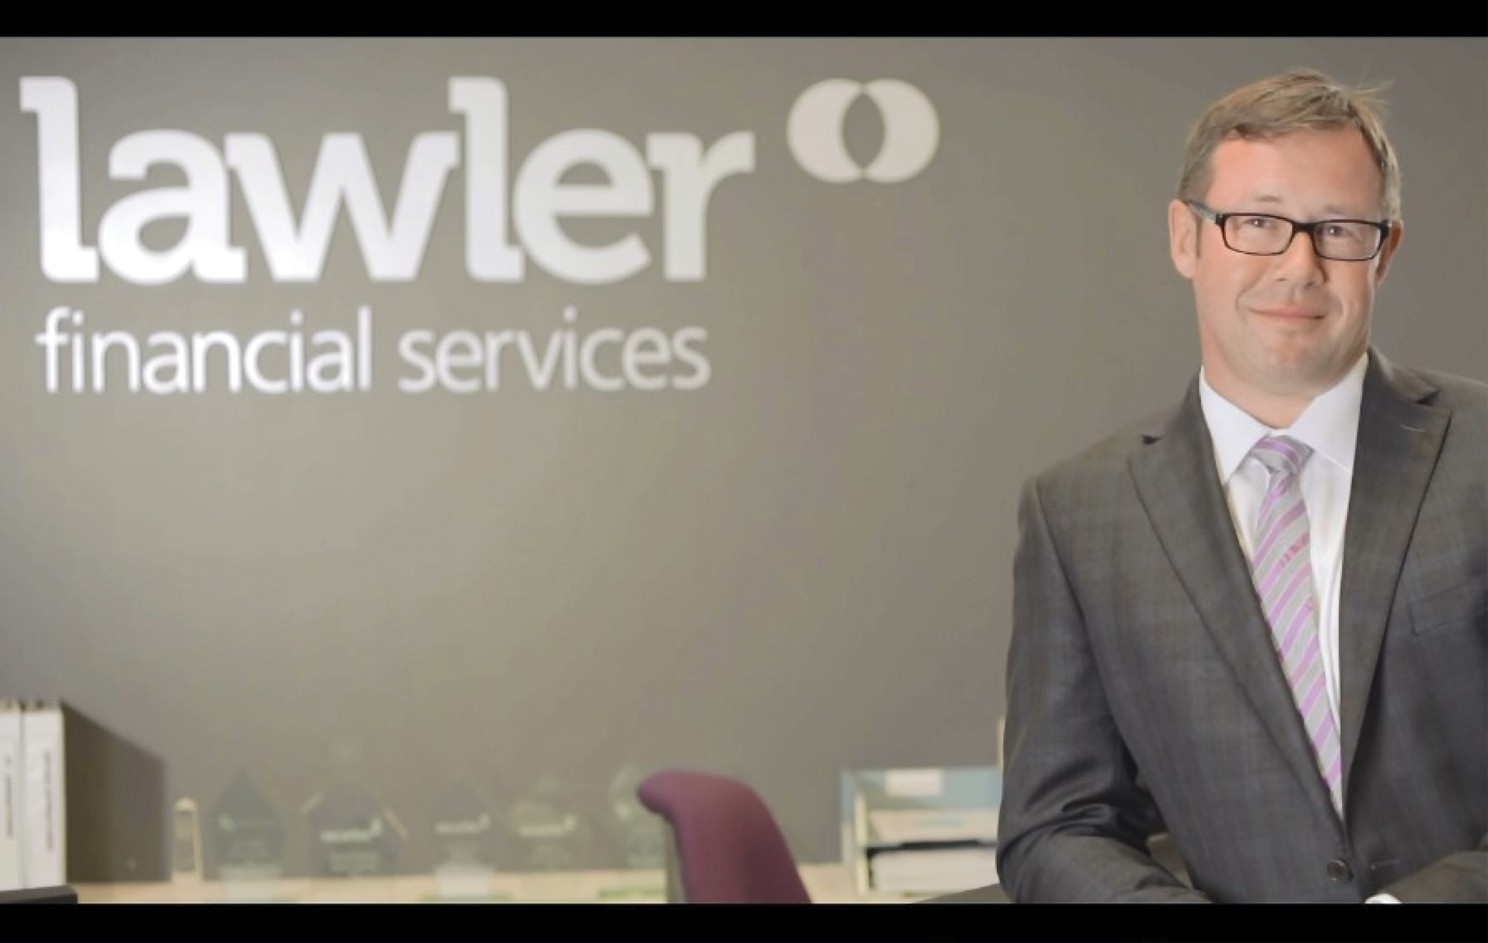 Lawler Financial Services